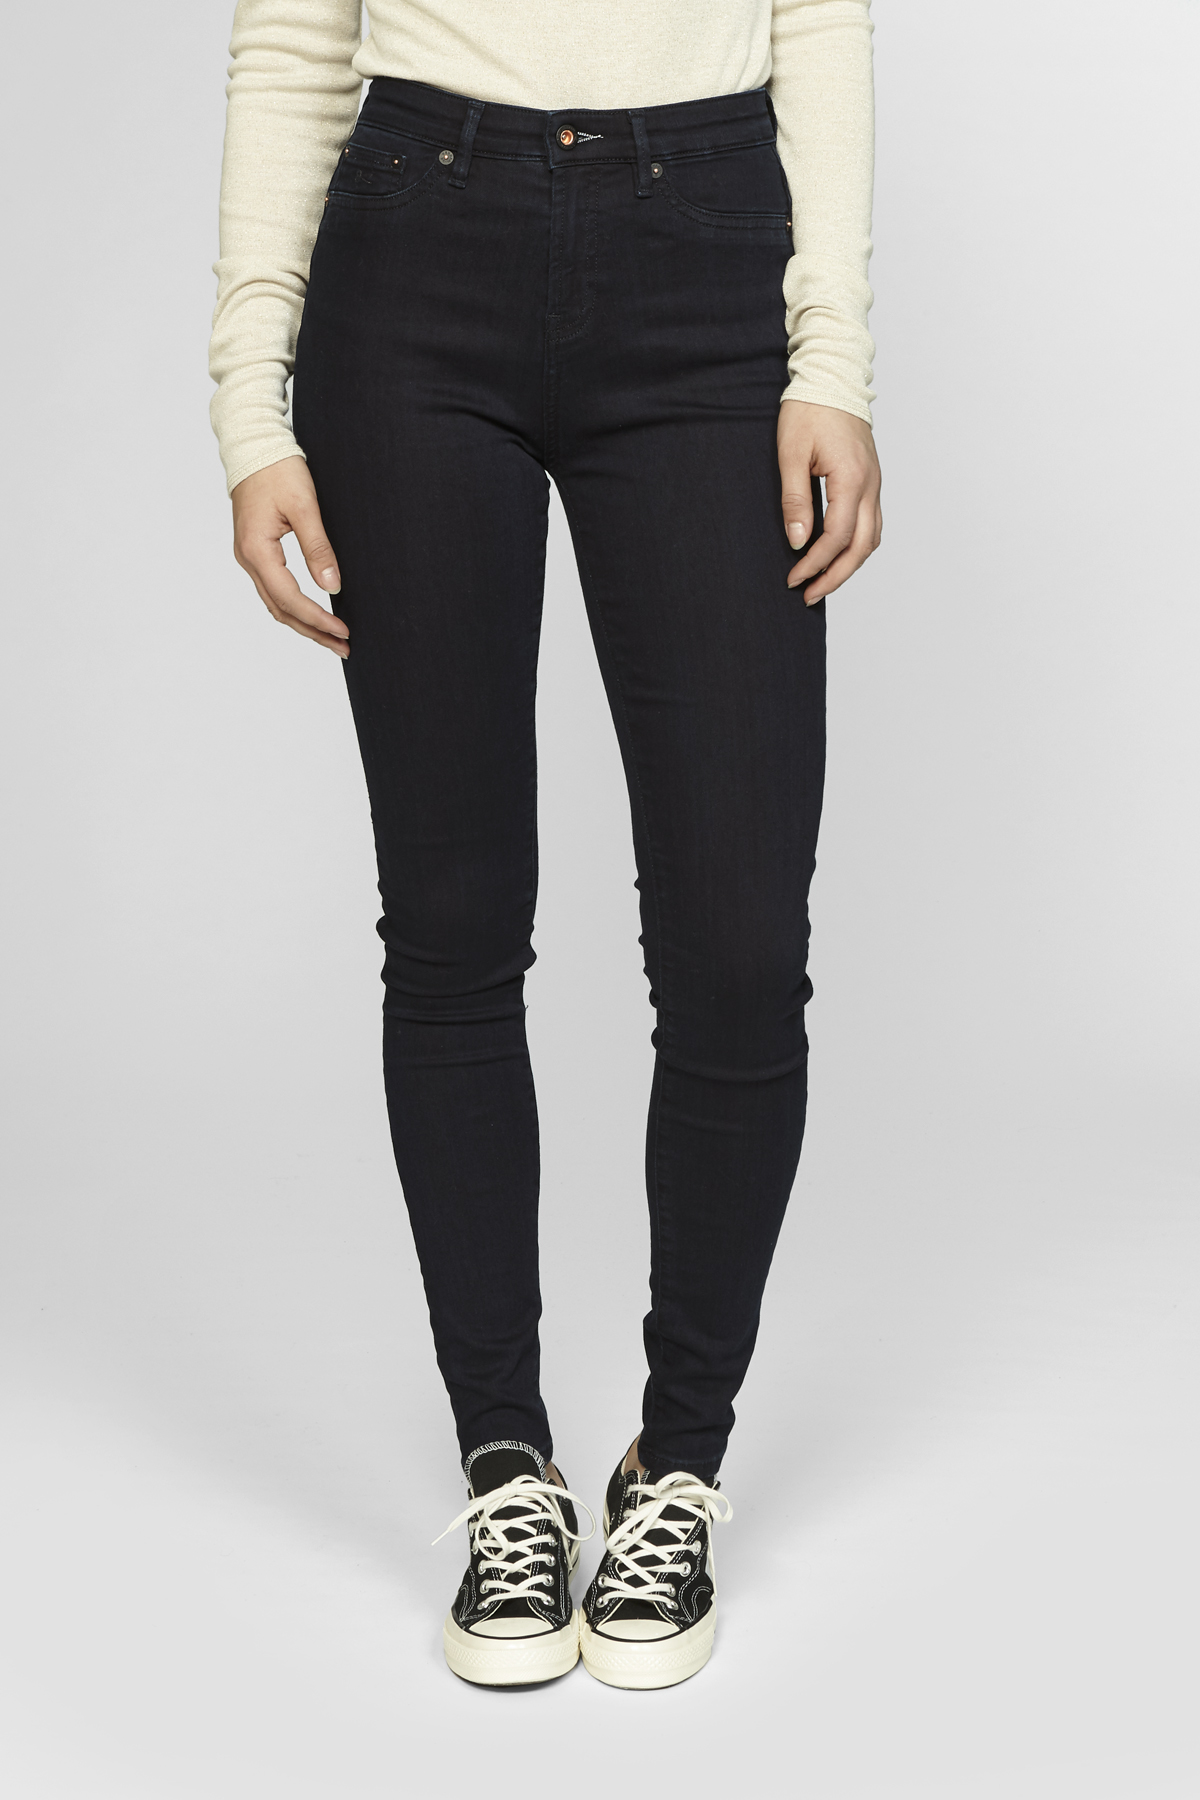 Needle High Rise Fit Jeans IPR